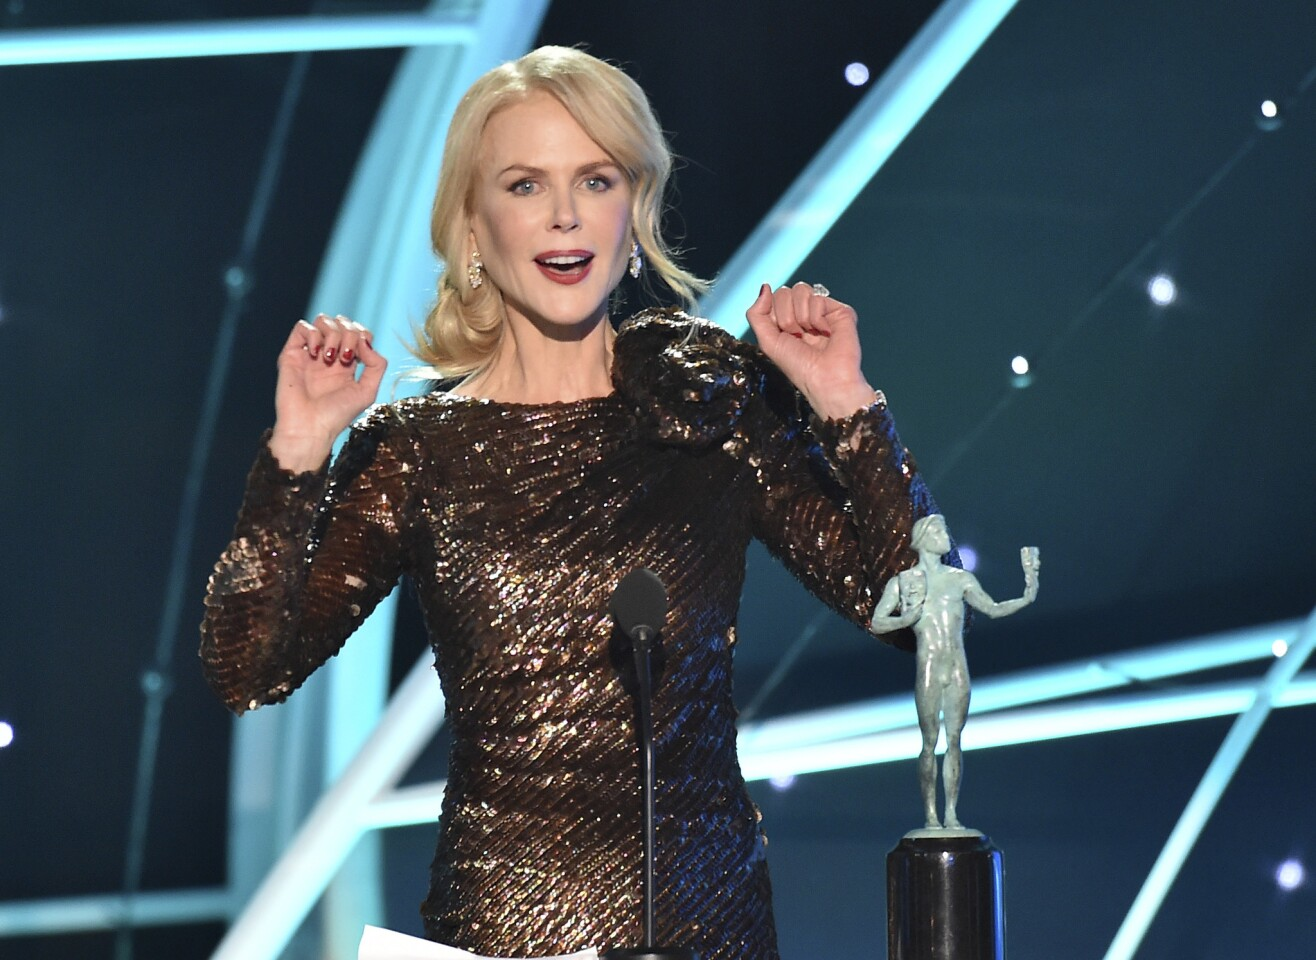 """Nicole Kidman accepts the award for outstanding performance by a female actor in a television movie or limited series for """"Big Little Lies"""" at the 24th annual Screen Actors Guild Awards at the Shrine Auditorium & Expo Hall on Sunday, Jan. 21, 2018, in Los Angeles. (Photo by Vince Bucci/Invision/AP)"""